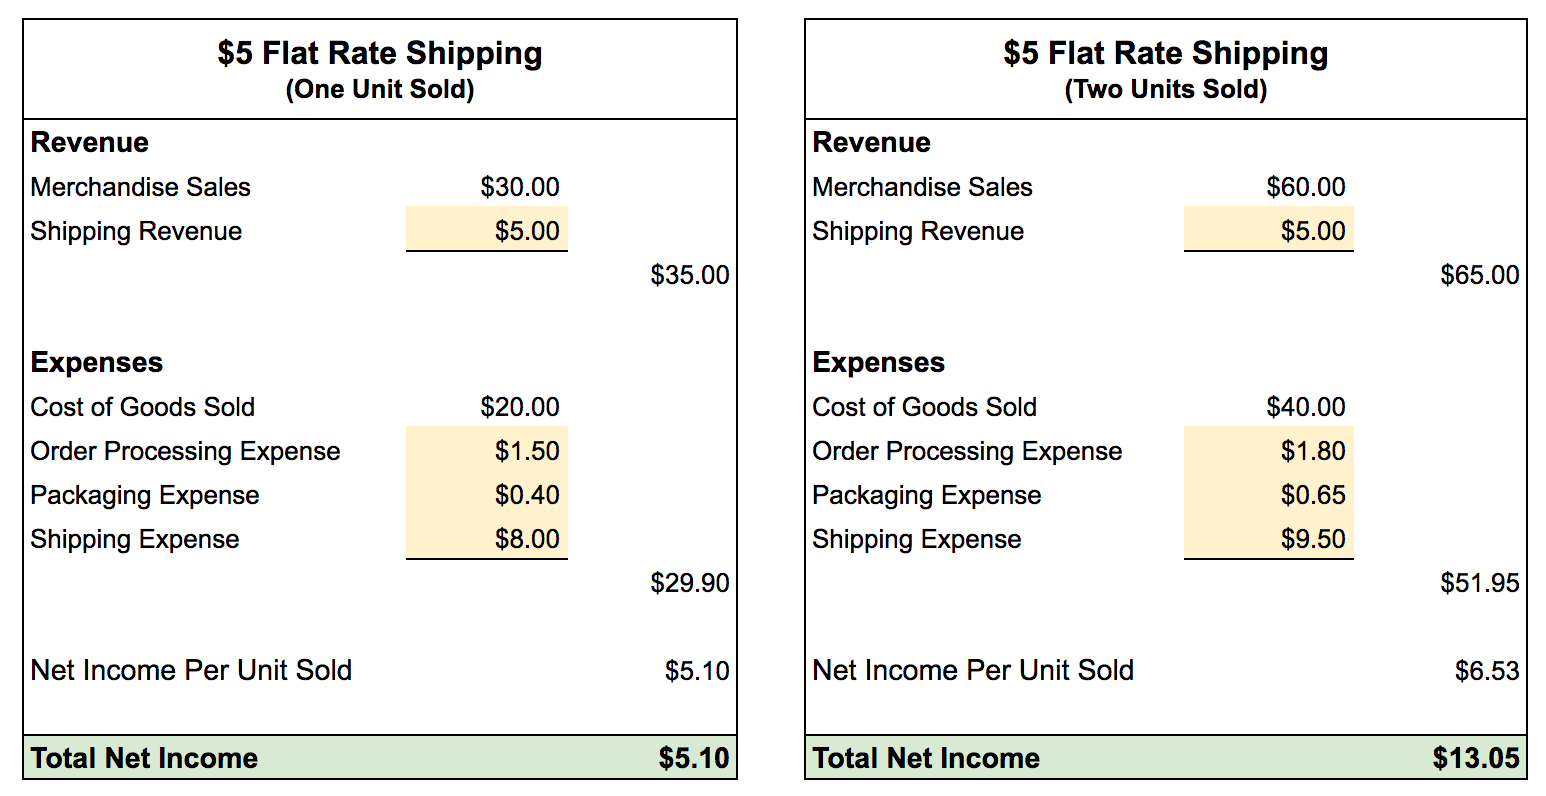 In this example, offering flat rate shipping for $5 produces a net income of $5.10 for a single unit sold. When two units are sold, the net income increases to $13.05.